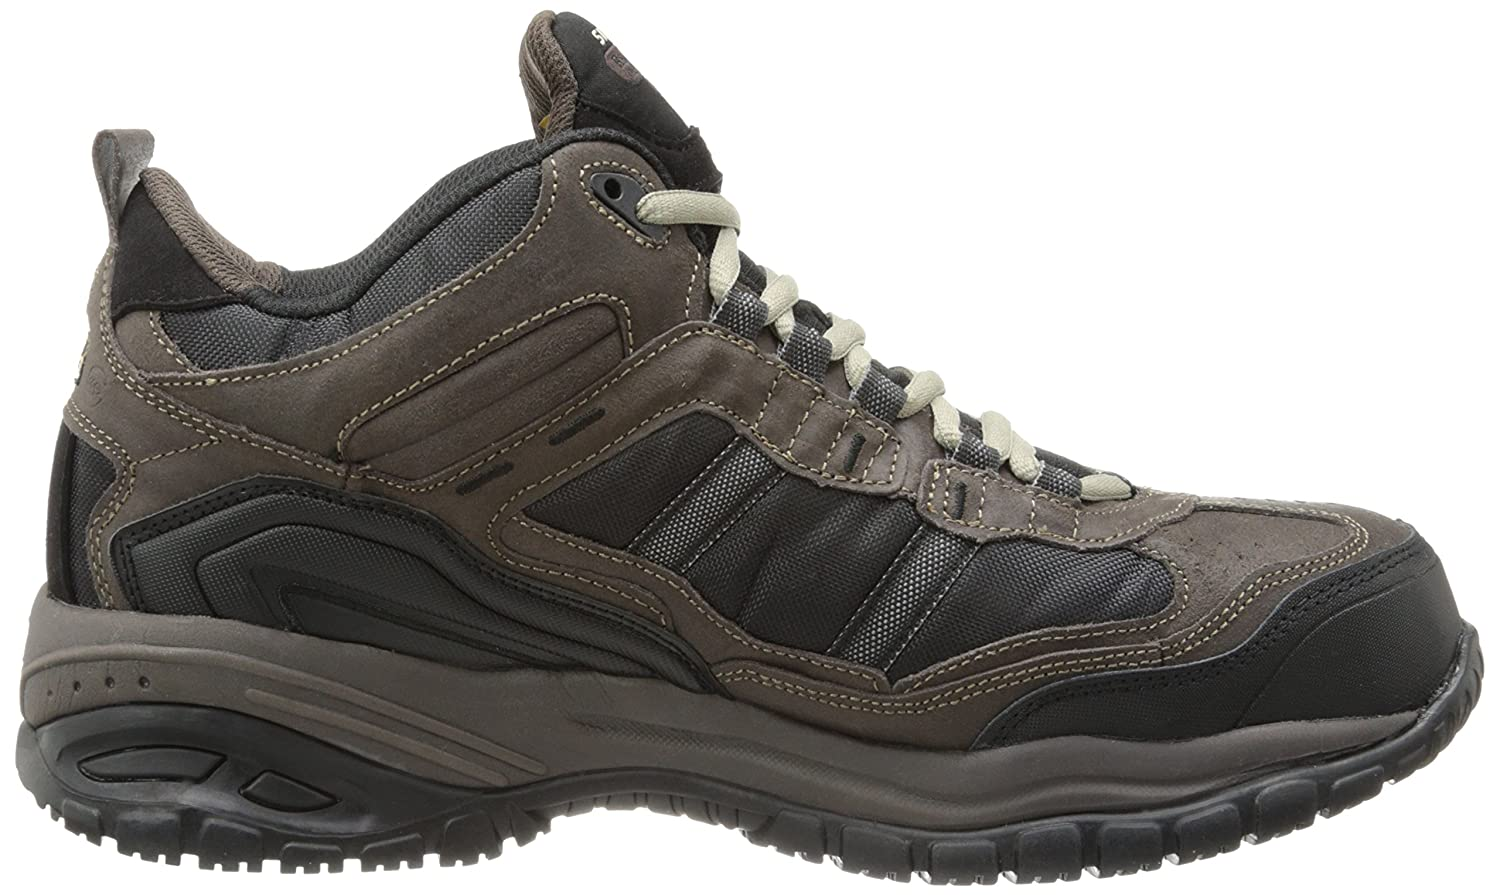 Skechers Work Men's Soft Soft Soft Stride Canopy Slip Resistant Work Stiefel 91e5df